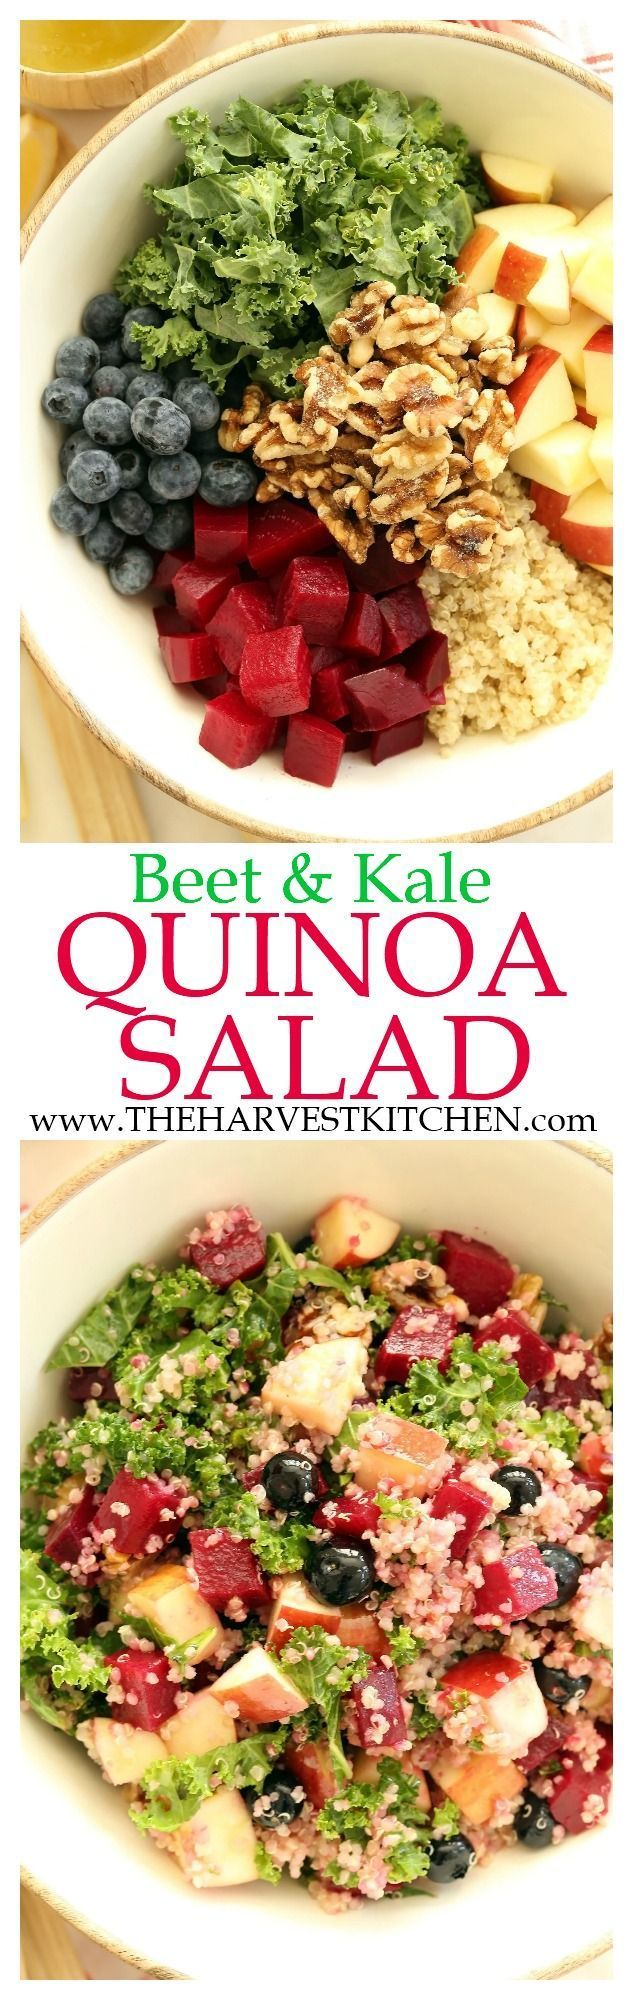 This Beet Kale Quinoa Salad is a powerhouse salad thats loaded with vitamins, minerals and a combo